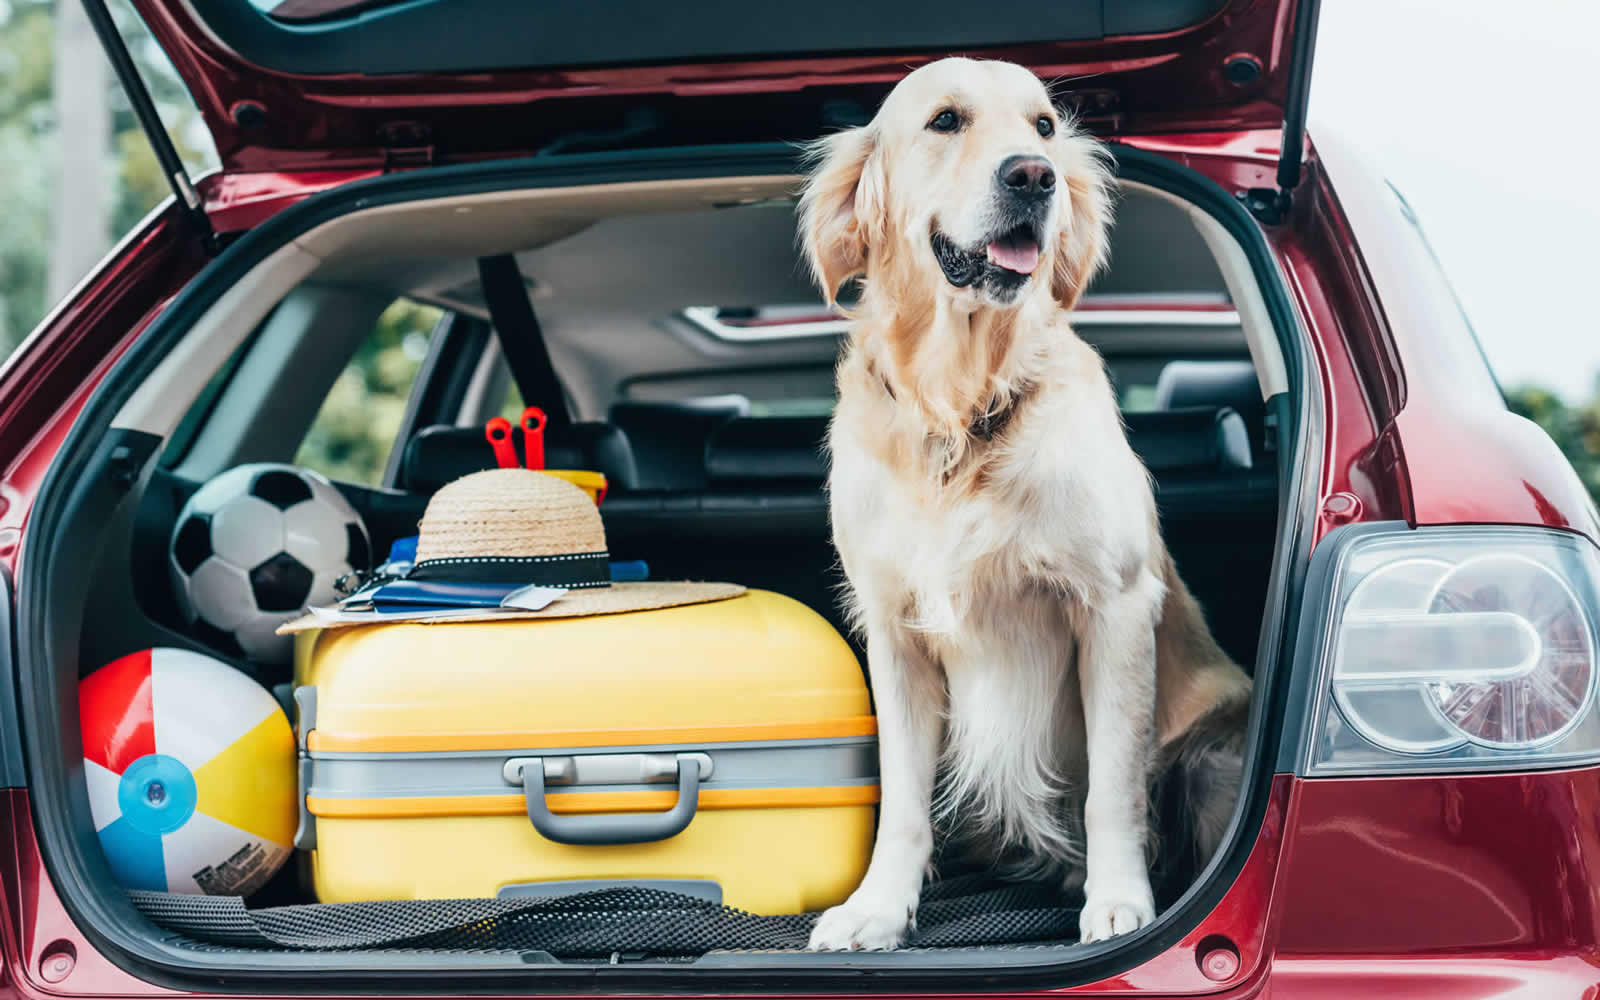 Image result for dog and luggage in boot